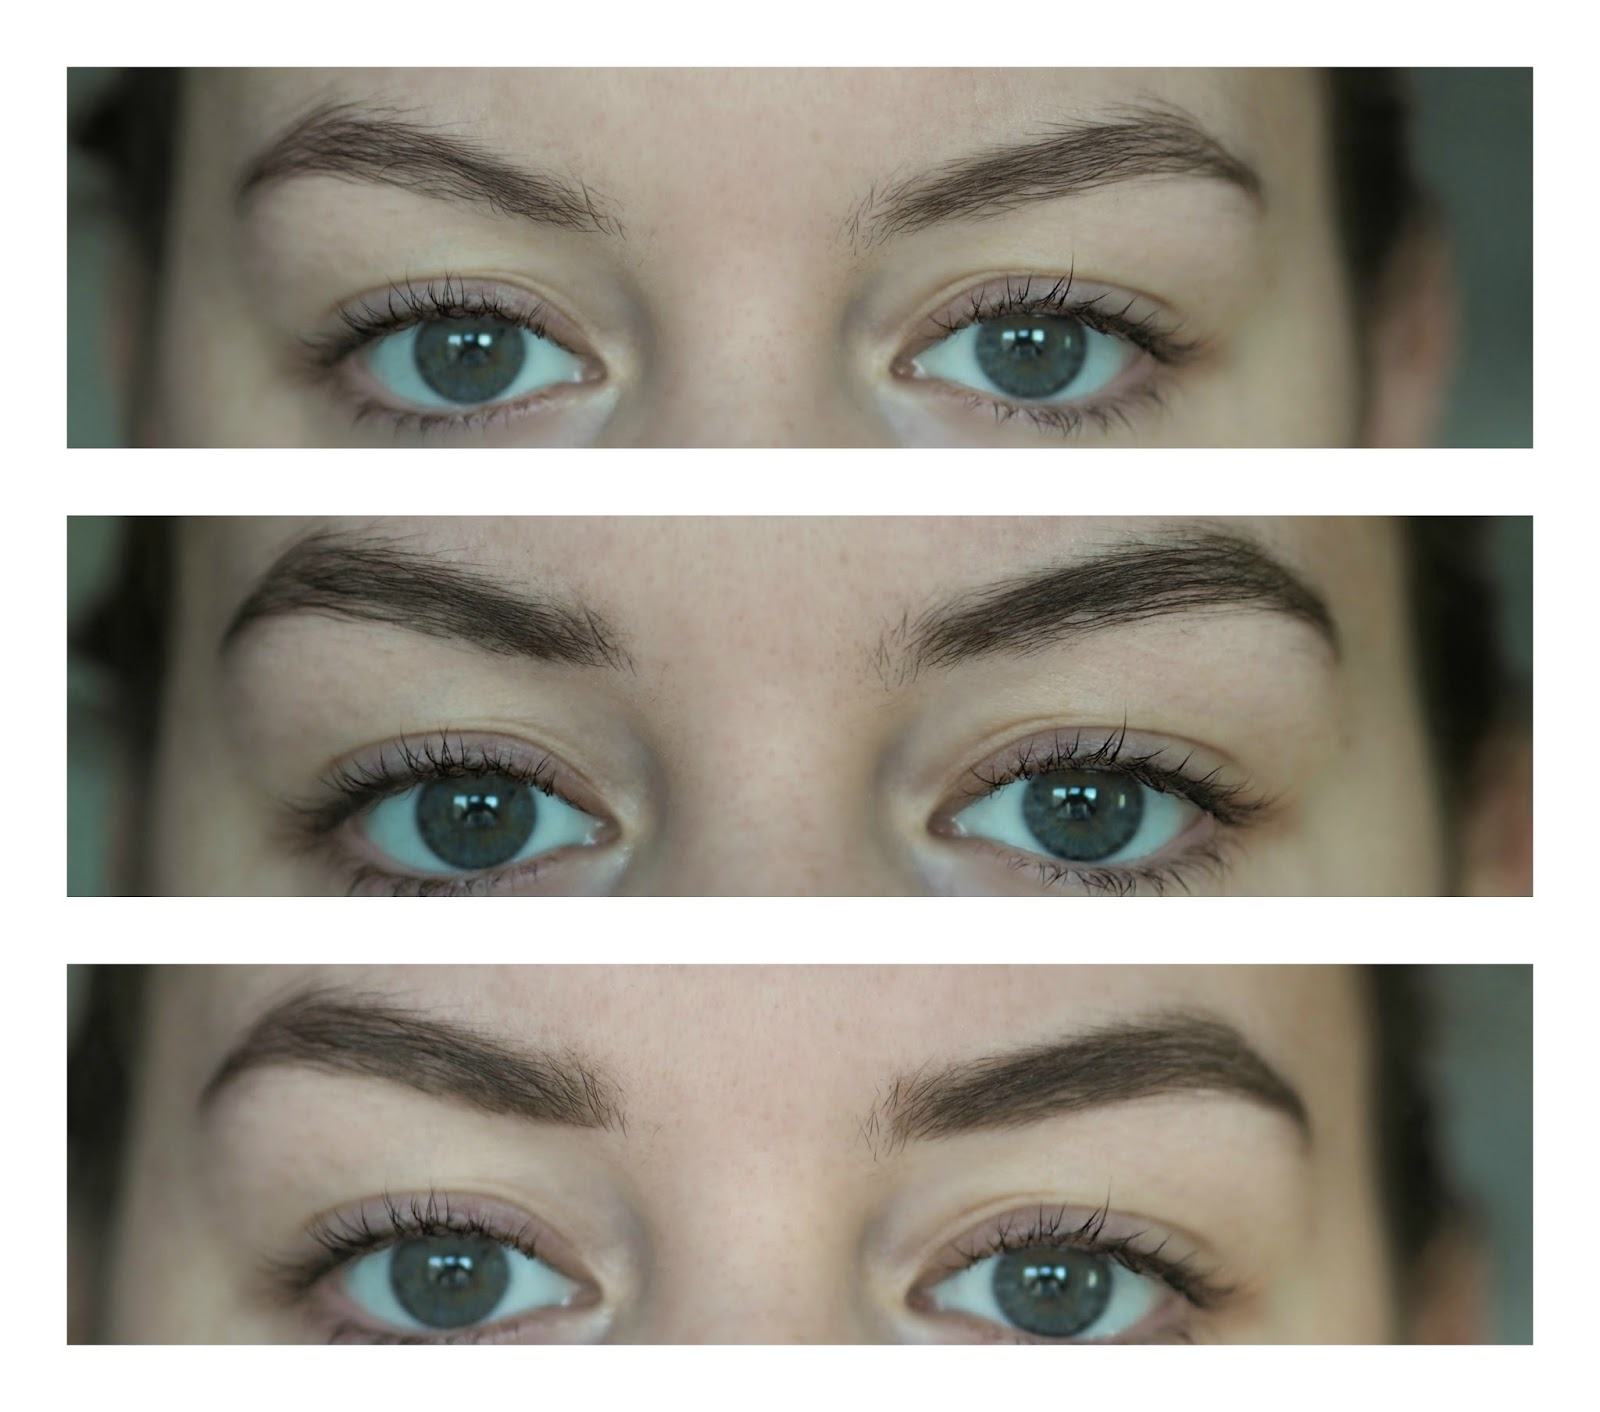 Before and After using Toppik Brow Building Fibers Set